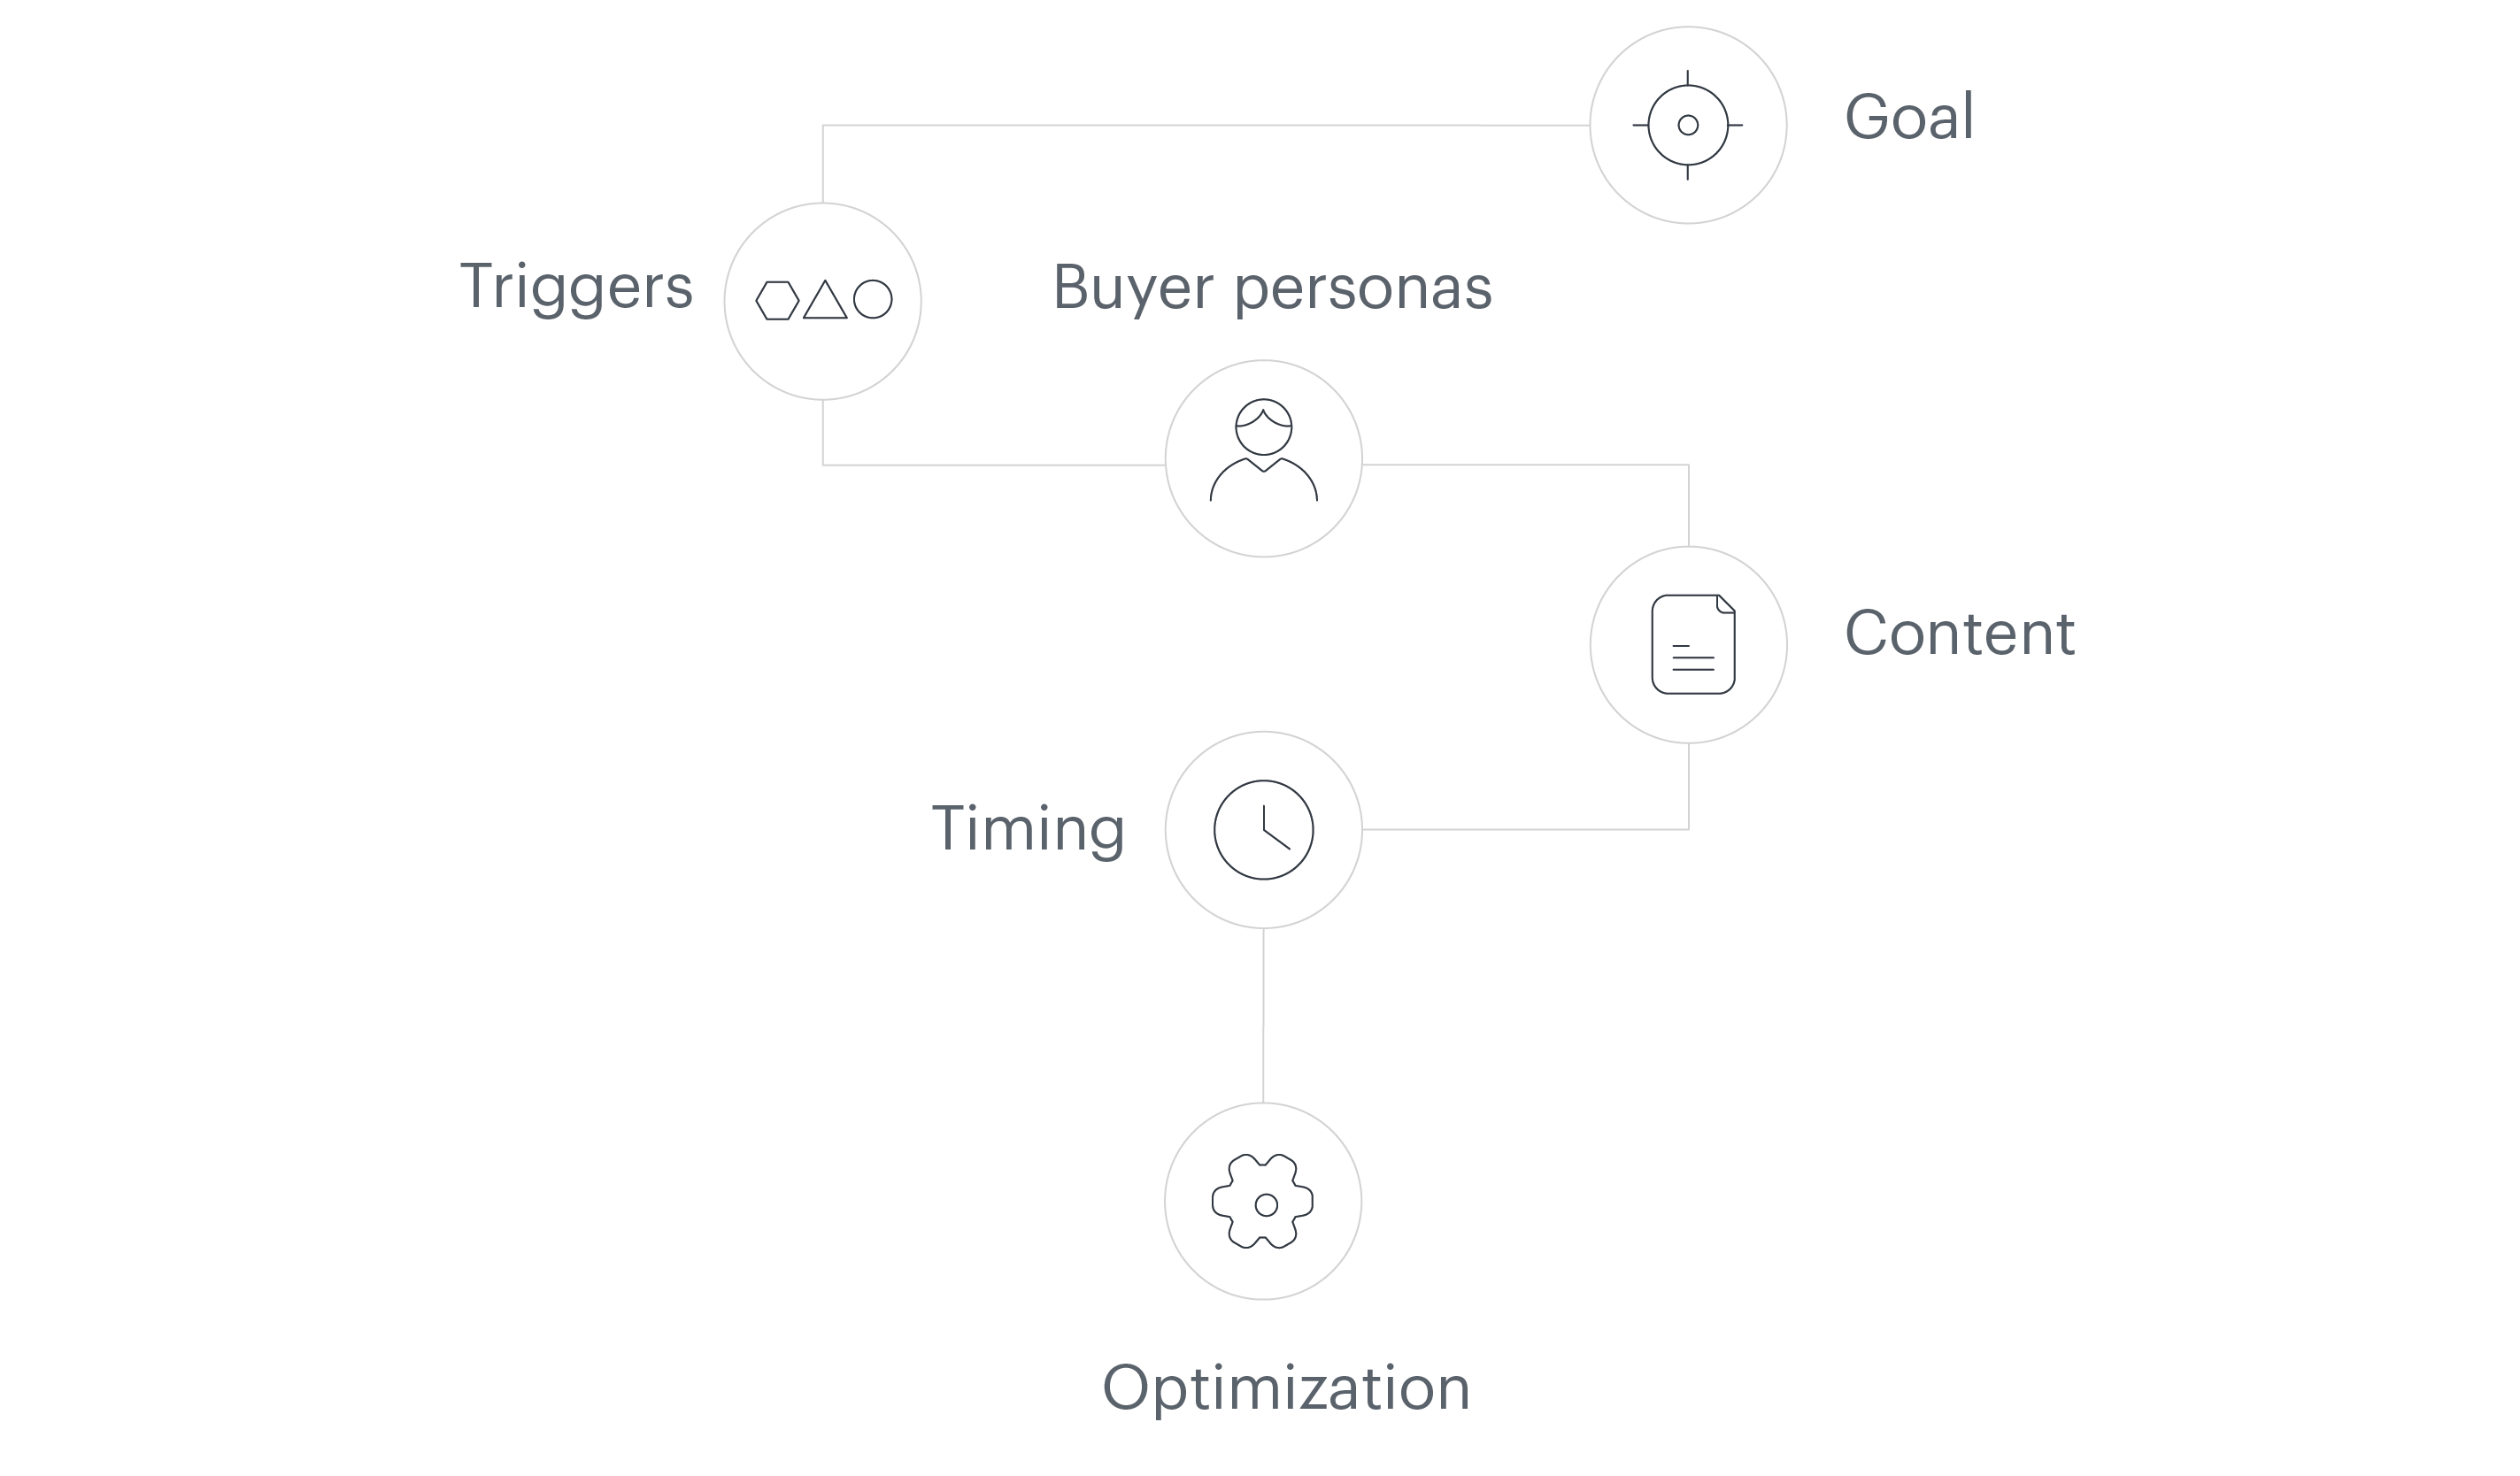 Setting a goal for a lead nurturing campaign